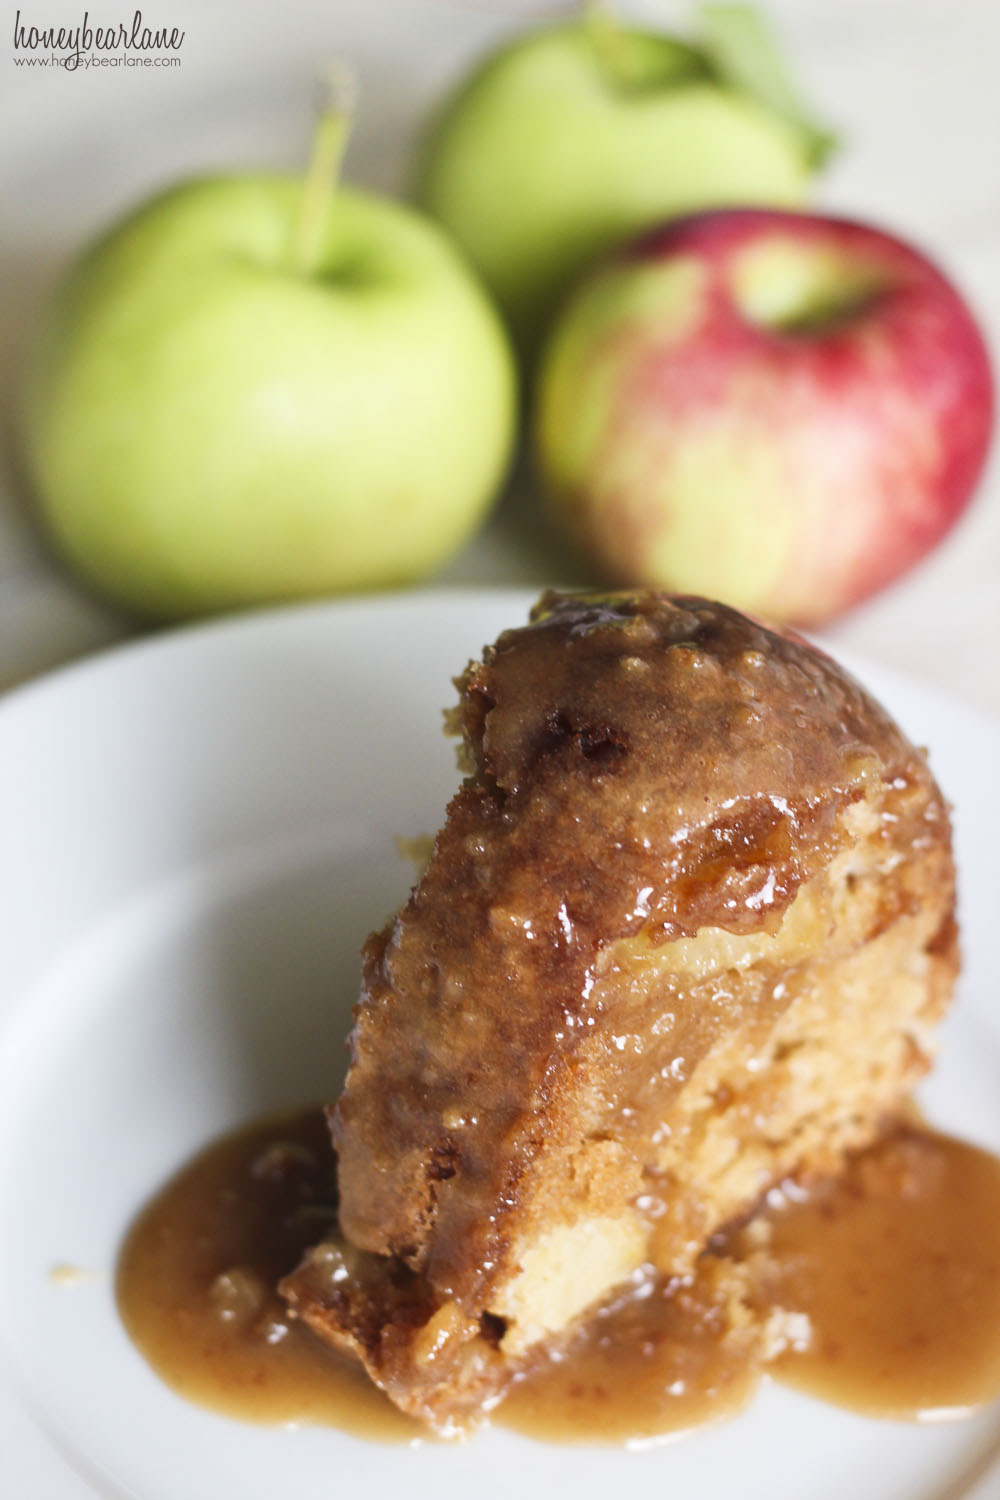 Caramel Apple Cake Recipe - HoneyBear Lane